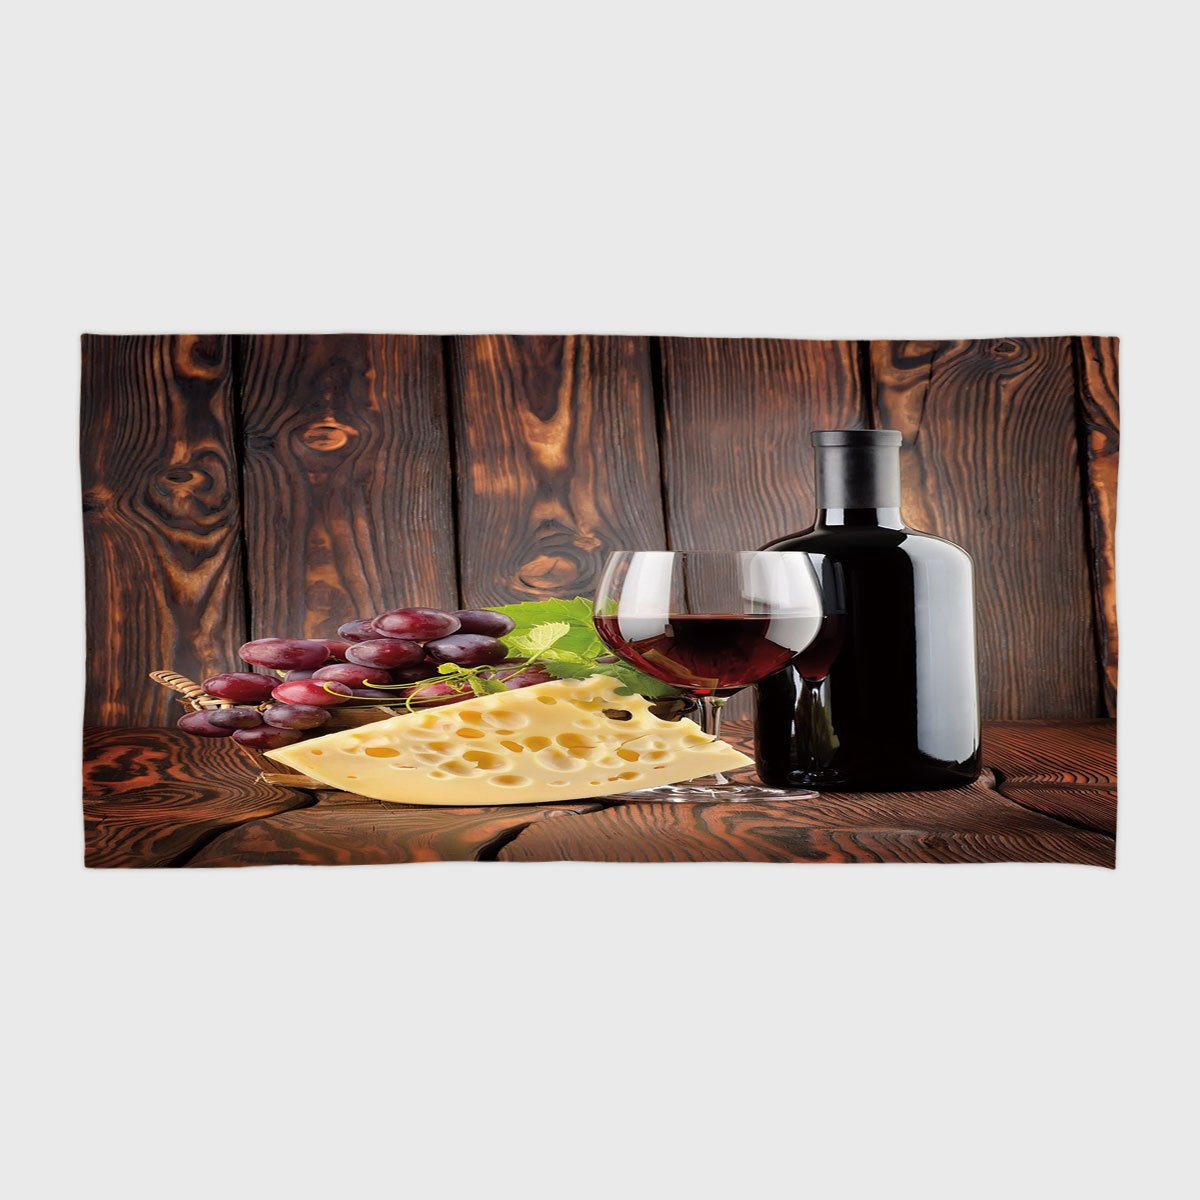 Cotton Microfiber Hotel SPA Beach Pool Bath Hand Towel,Wine,Red Wine Cabernet Bottle and Glass Cheese and Grapes on Wood Planks Print Decorative,Brown Burgundy Cream,for Kids, Teens, and Adults